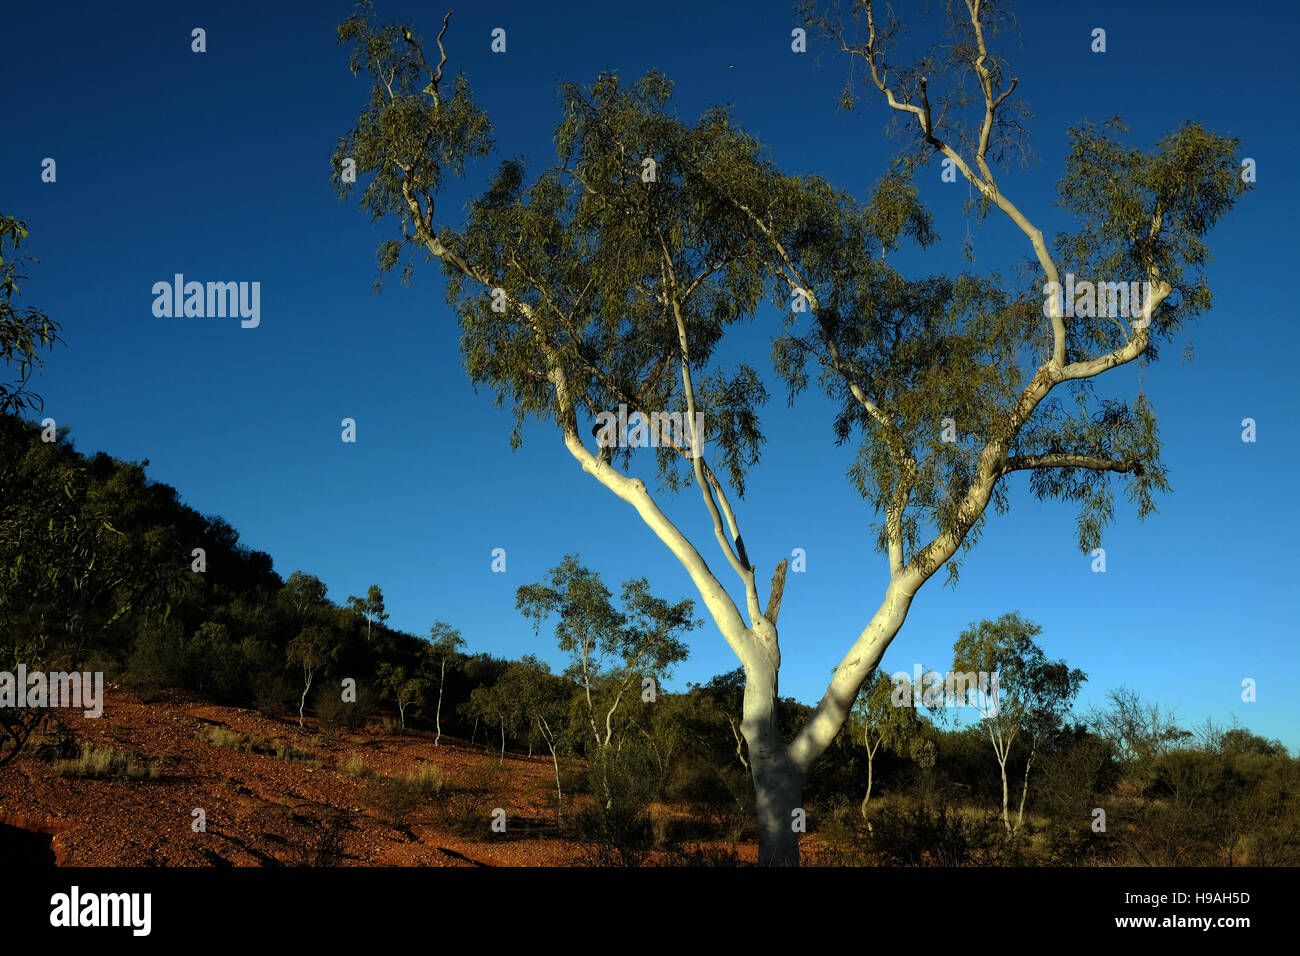 Gum trees in the Macdonnell Ranges, Alice Springs, Northern Territory, Australia - Stock Image